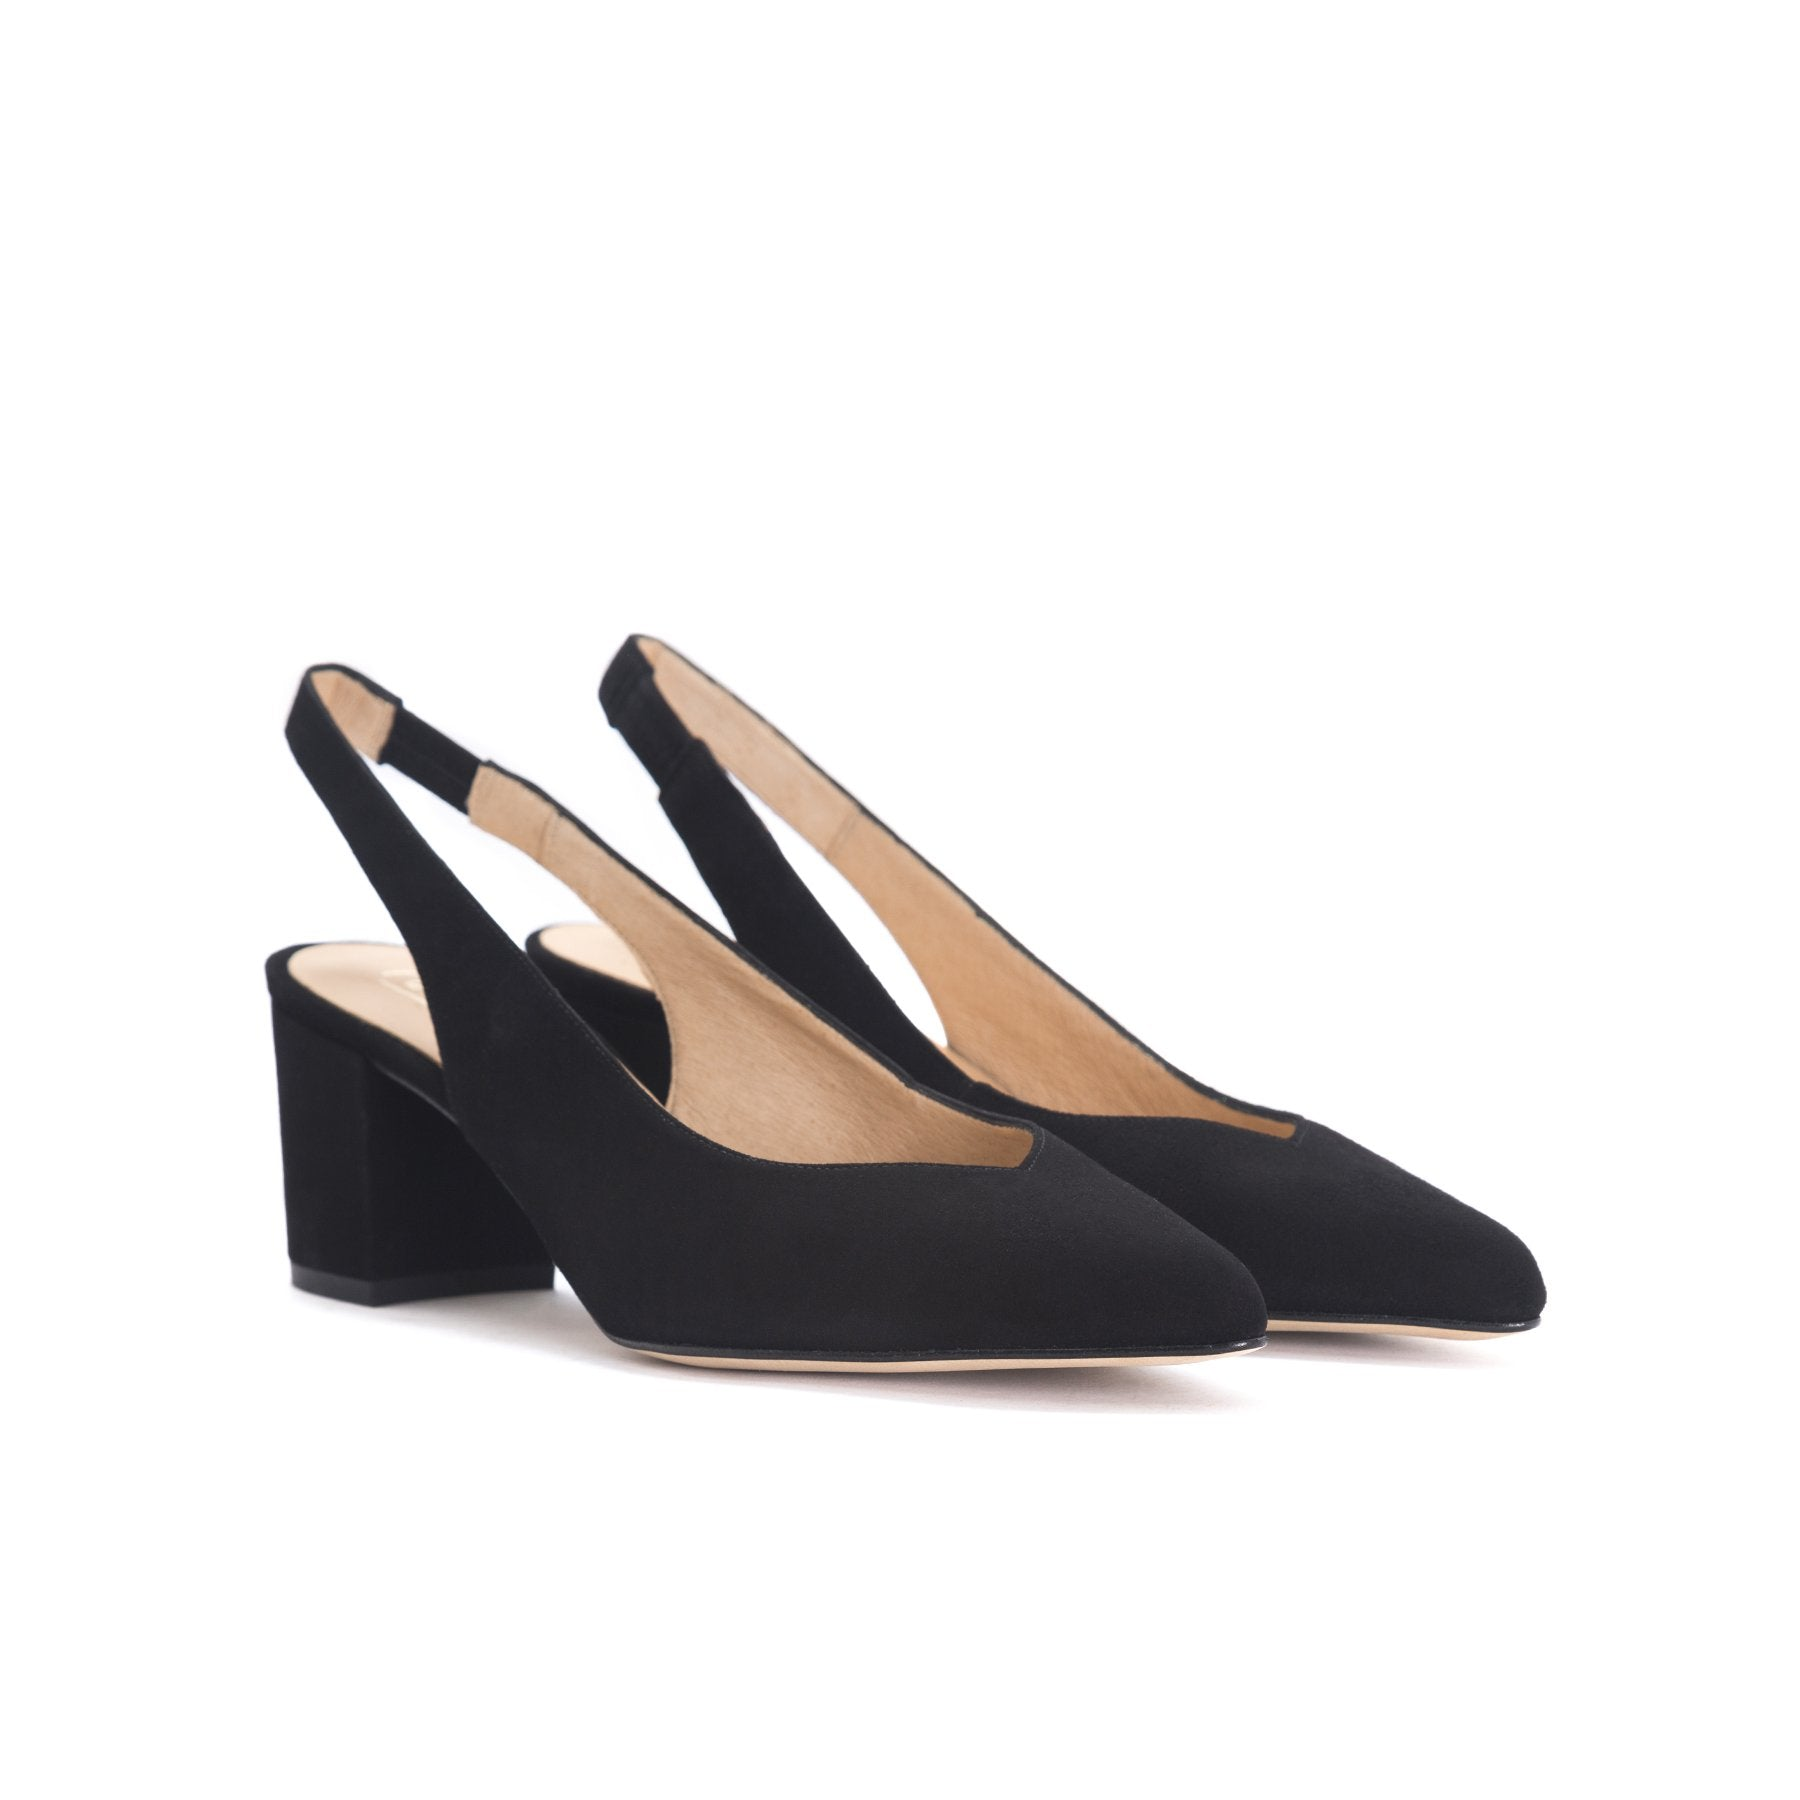 Vereda Black Suede Pumps